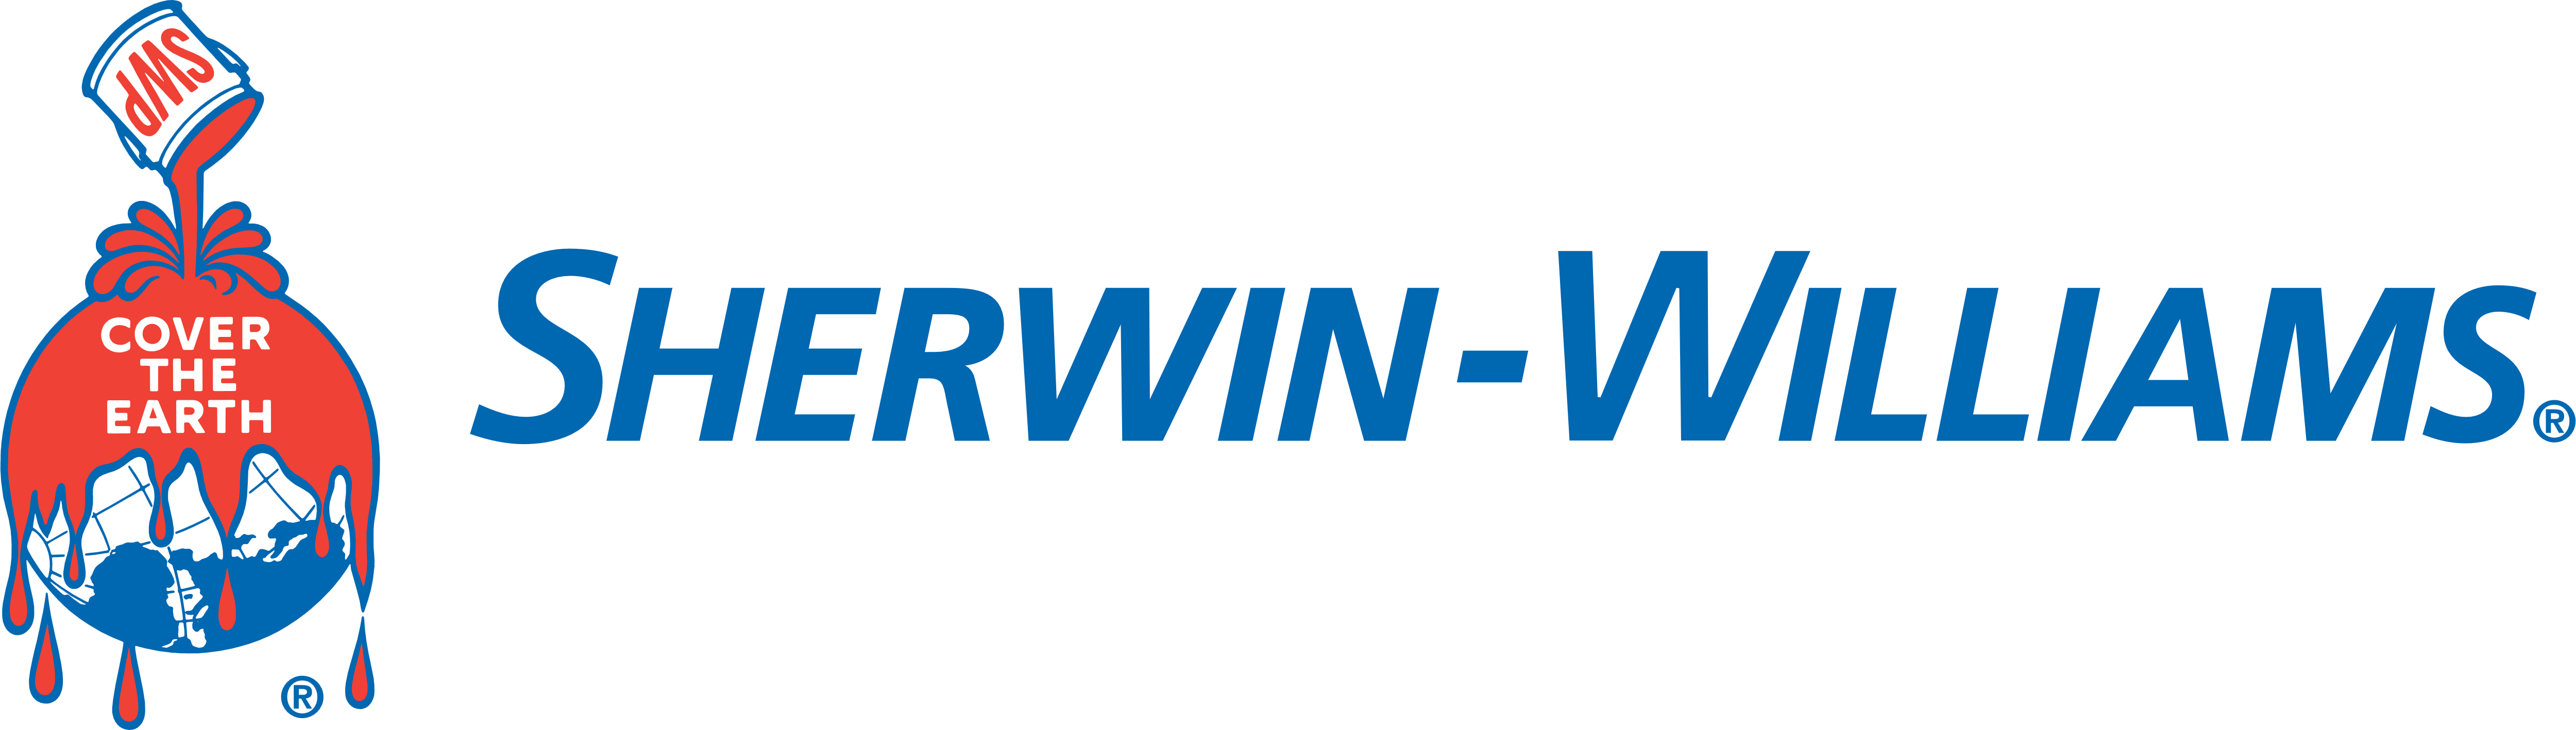 Sherwin Williams company logo.